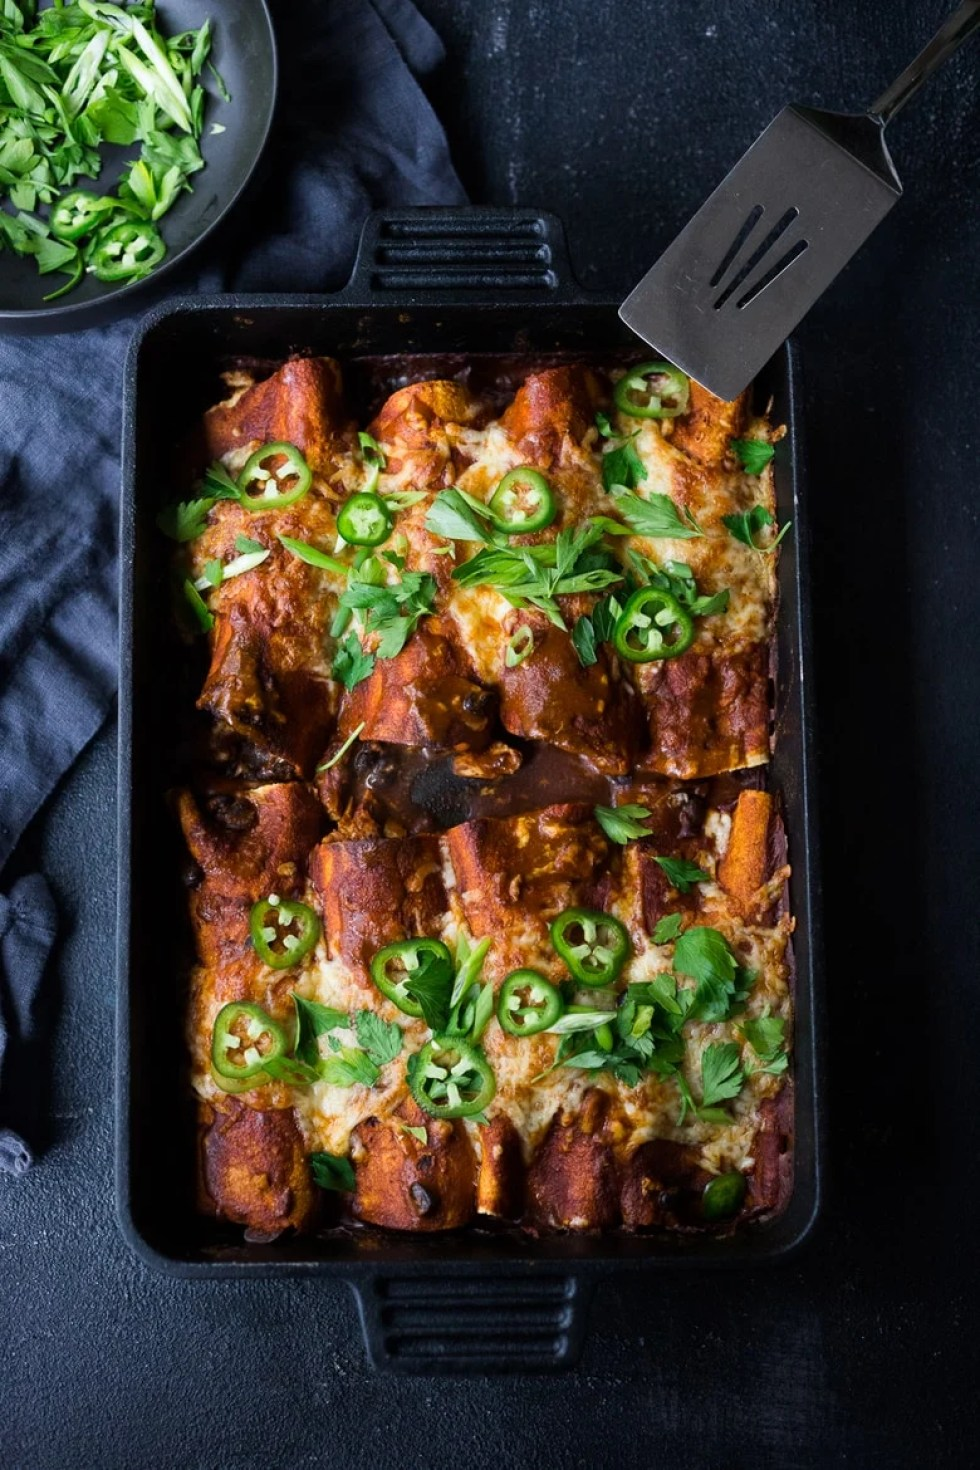 Leftover Turkey has never tasted so good! Here's a simple tasty recipe for Turkey Enchiladas with Black Beans - Fast and Easy and can be made with rotisserie chicken too! | www.feastingathome.com